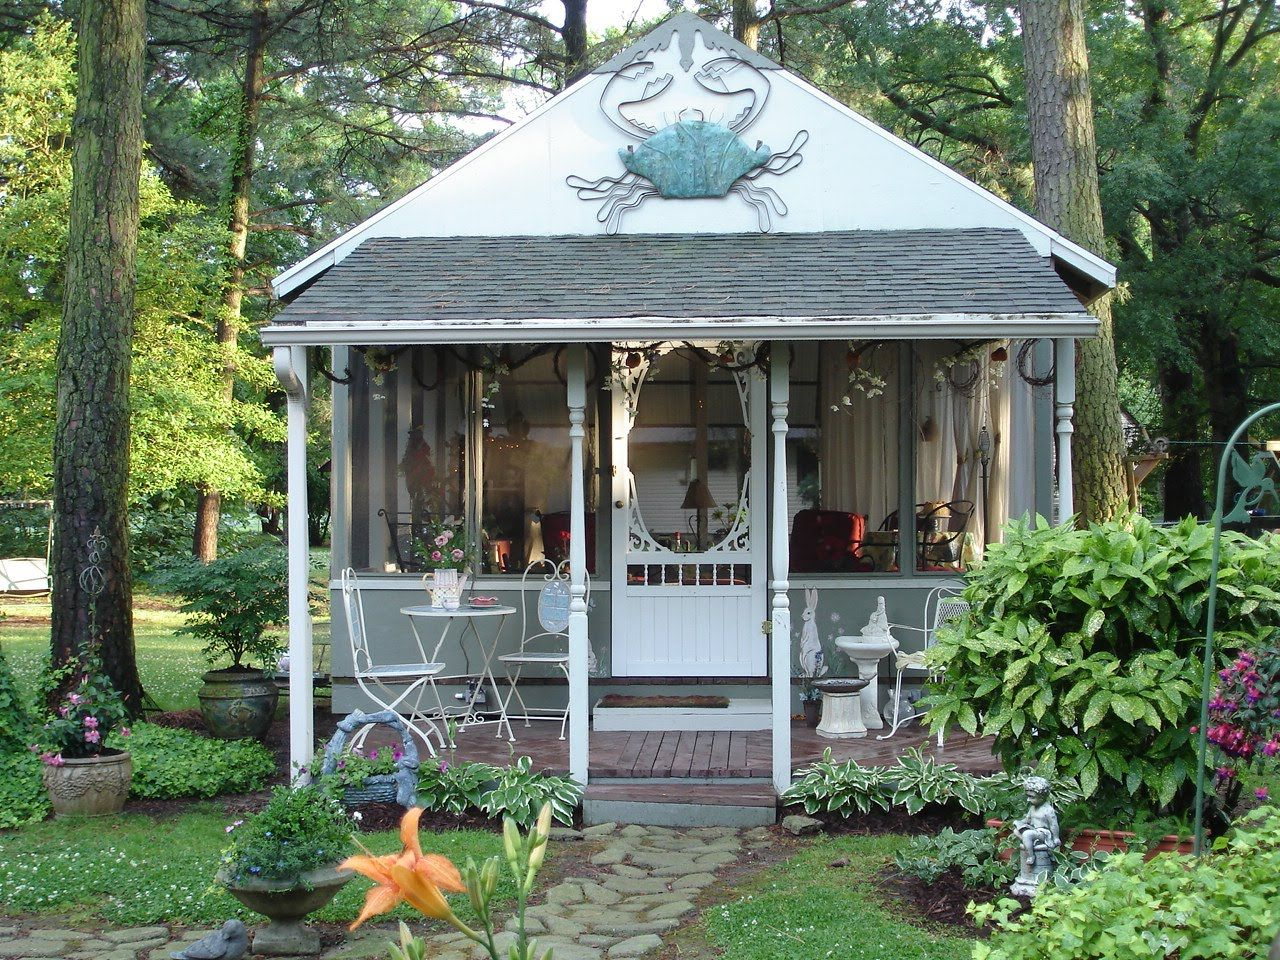 My dream shed | Backyard paradise, Home and garden, Backyard on My Dream Patio  id=96162